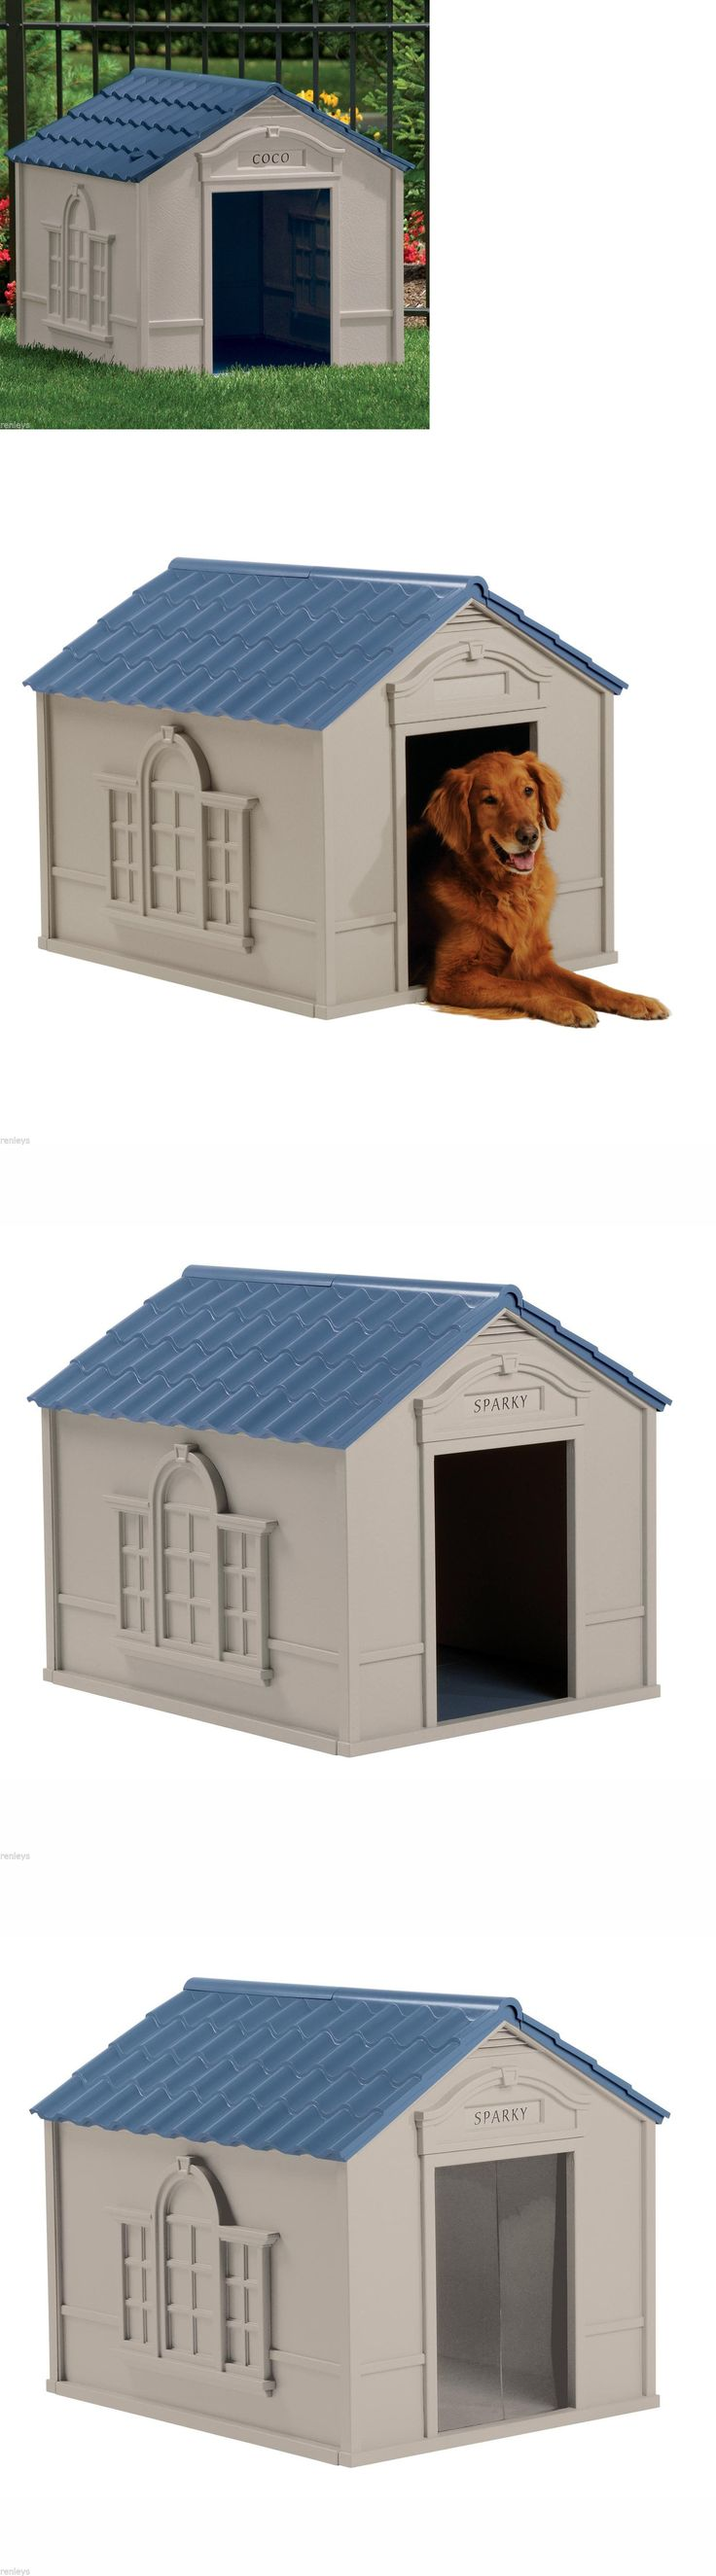 Dog Houses 108884: Deluxe Extra Large Pet Dog Cat House Home Outdoor Cage Durable Resin All-Weather BUY IT NOW ONLY: $78.85